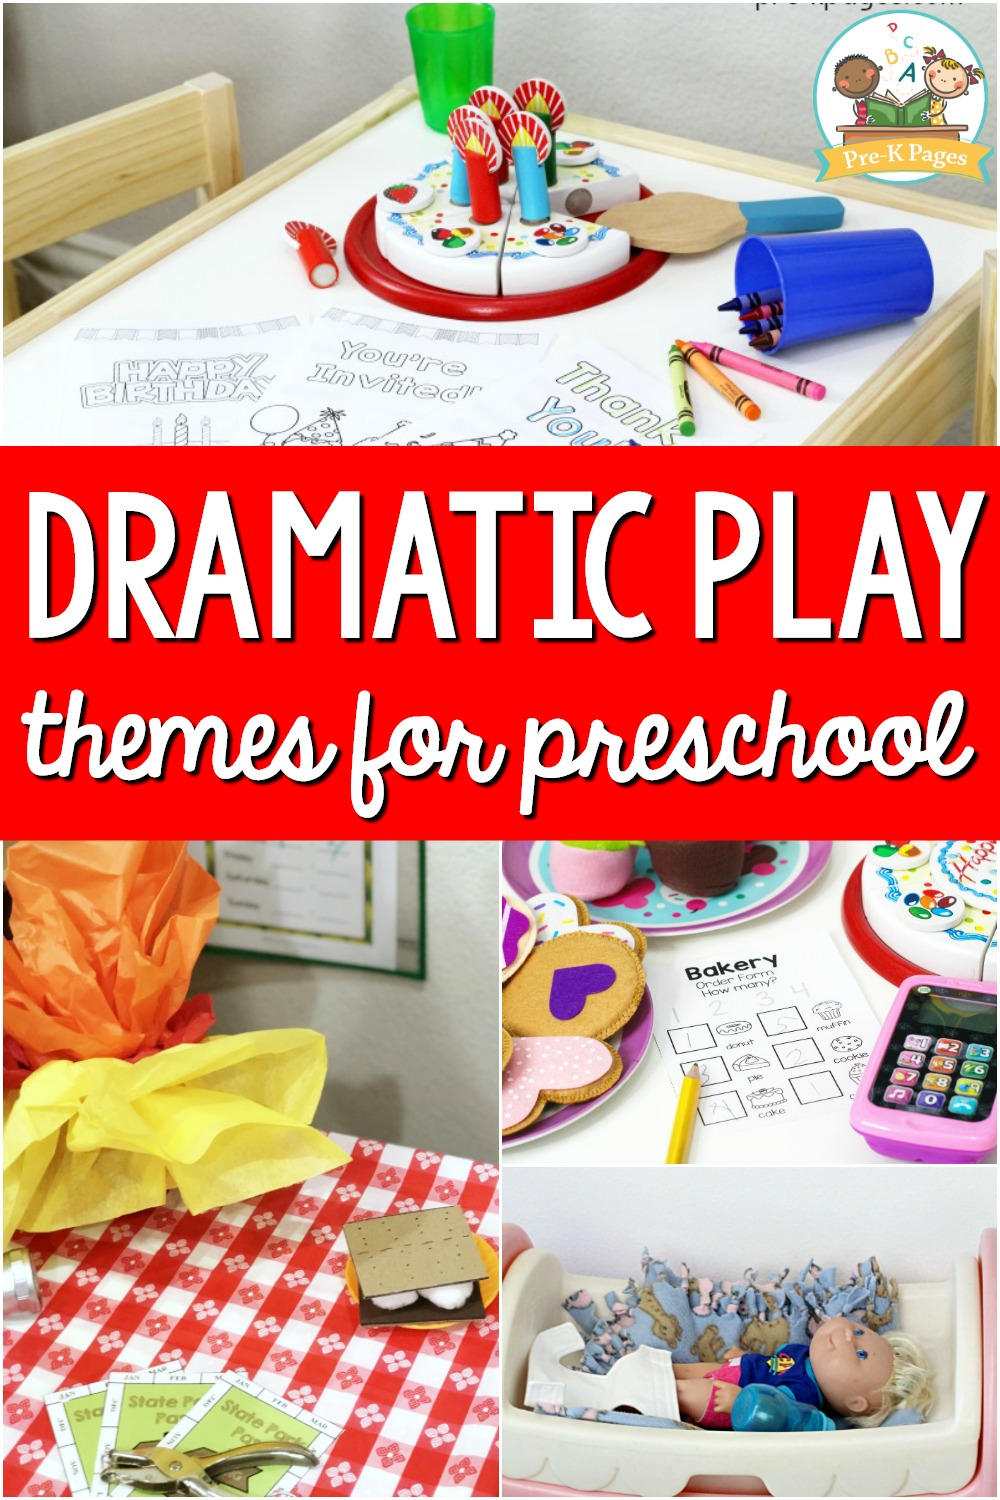 Dramatic Play Themes for Preschool